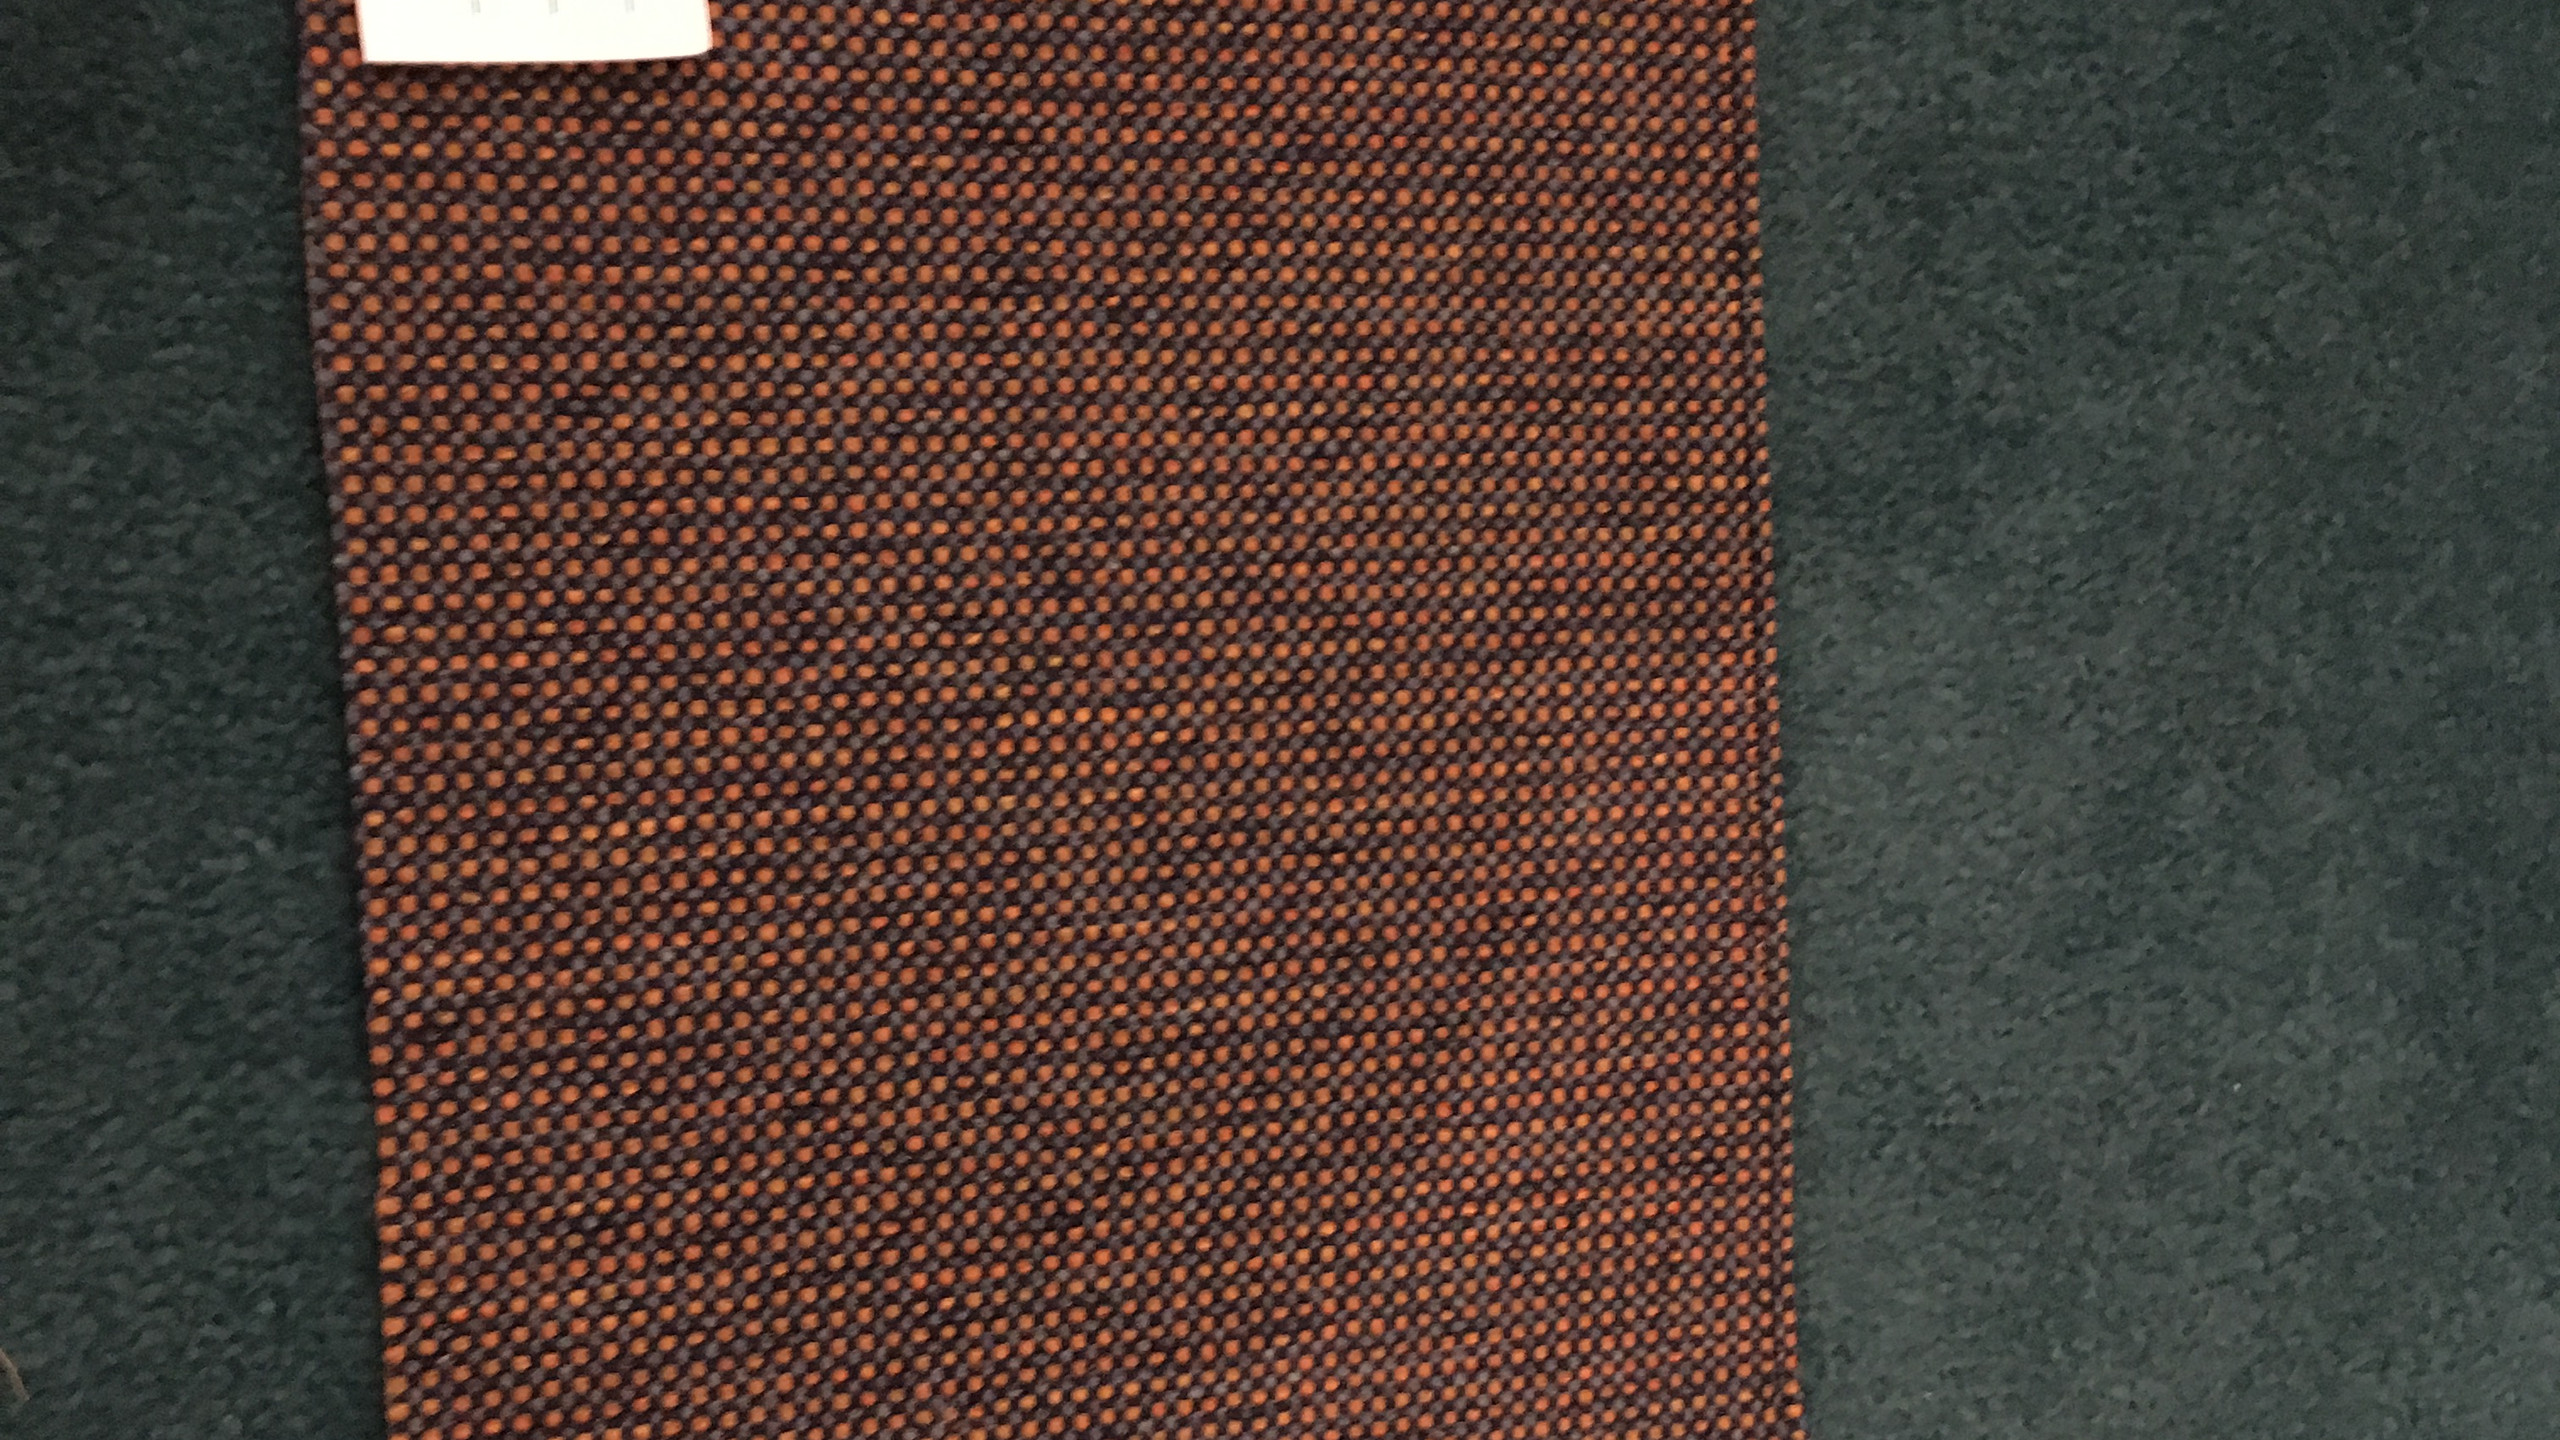 Fabric sample on carpet